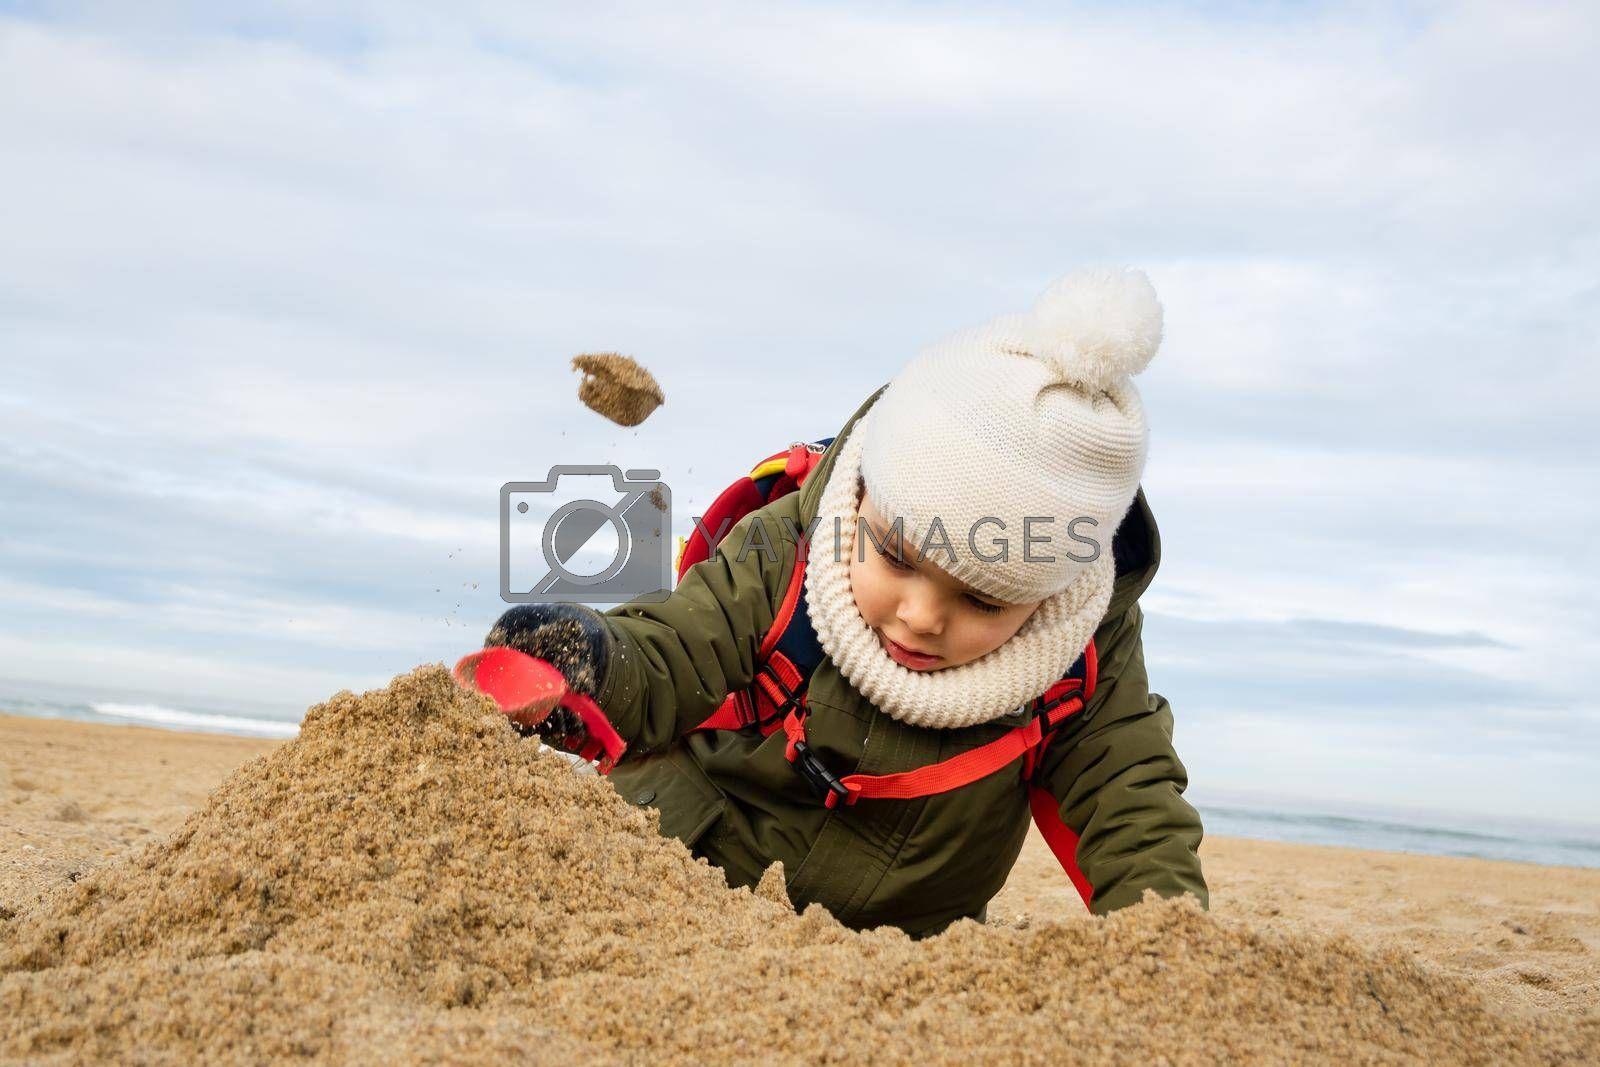 Little boy playing in the sand on beach in winter, toddler throwing sand in the air with small plastic shovel.